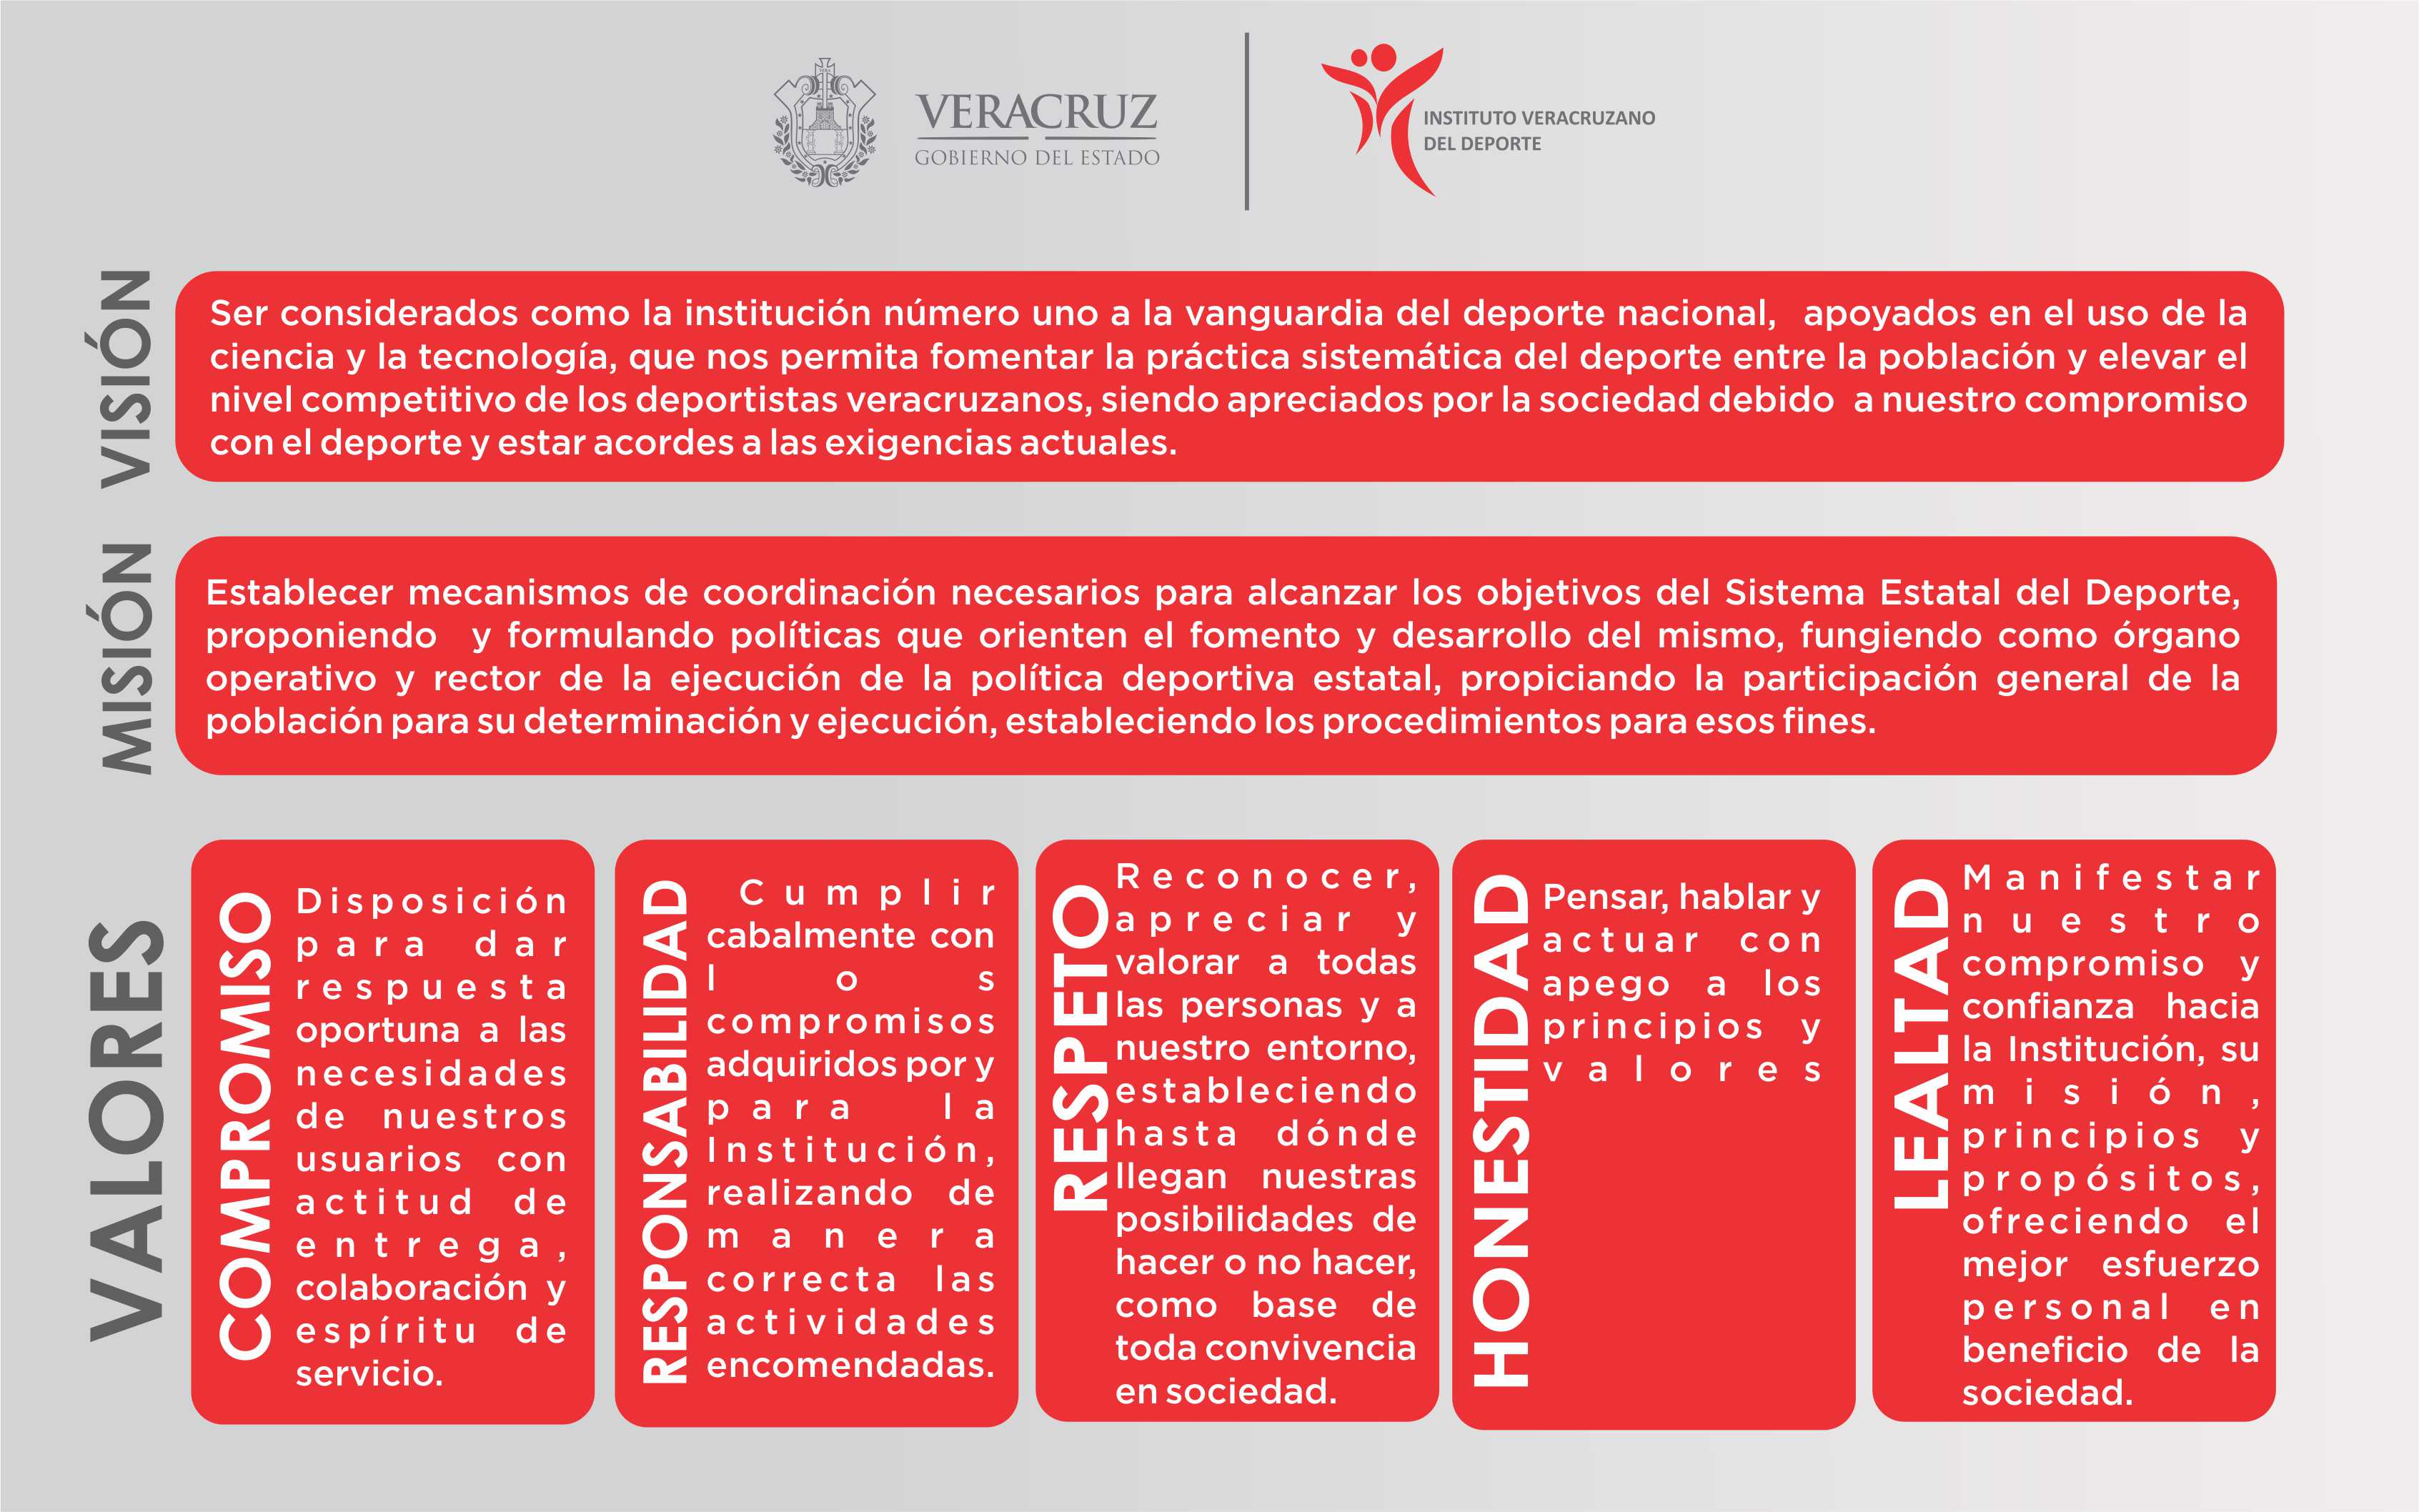 MISION VISION VALORES IVD-2016